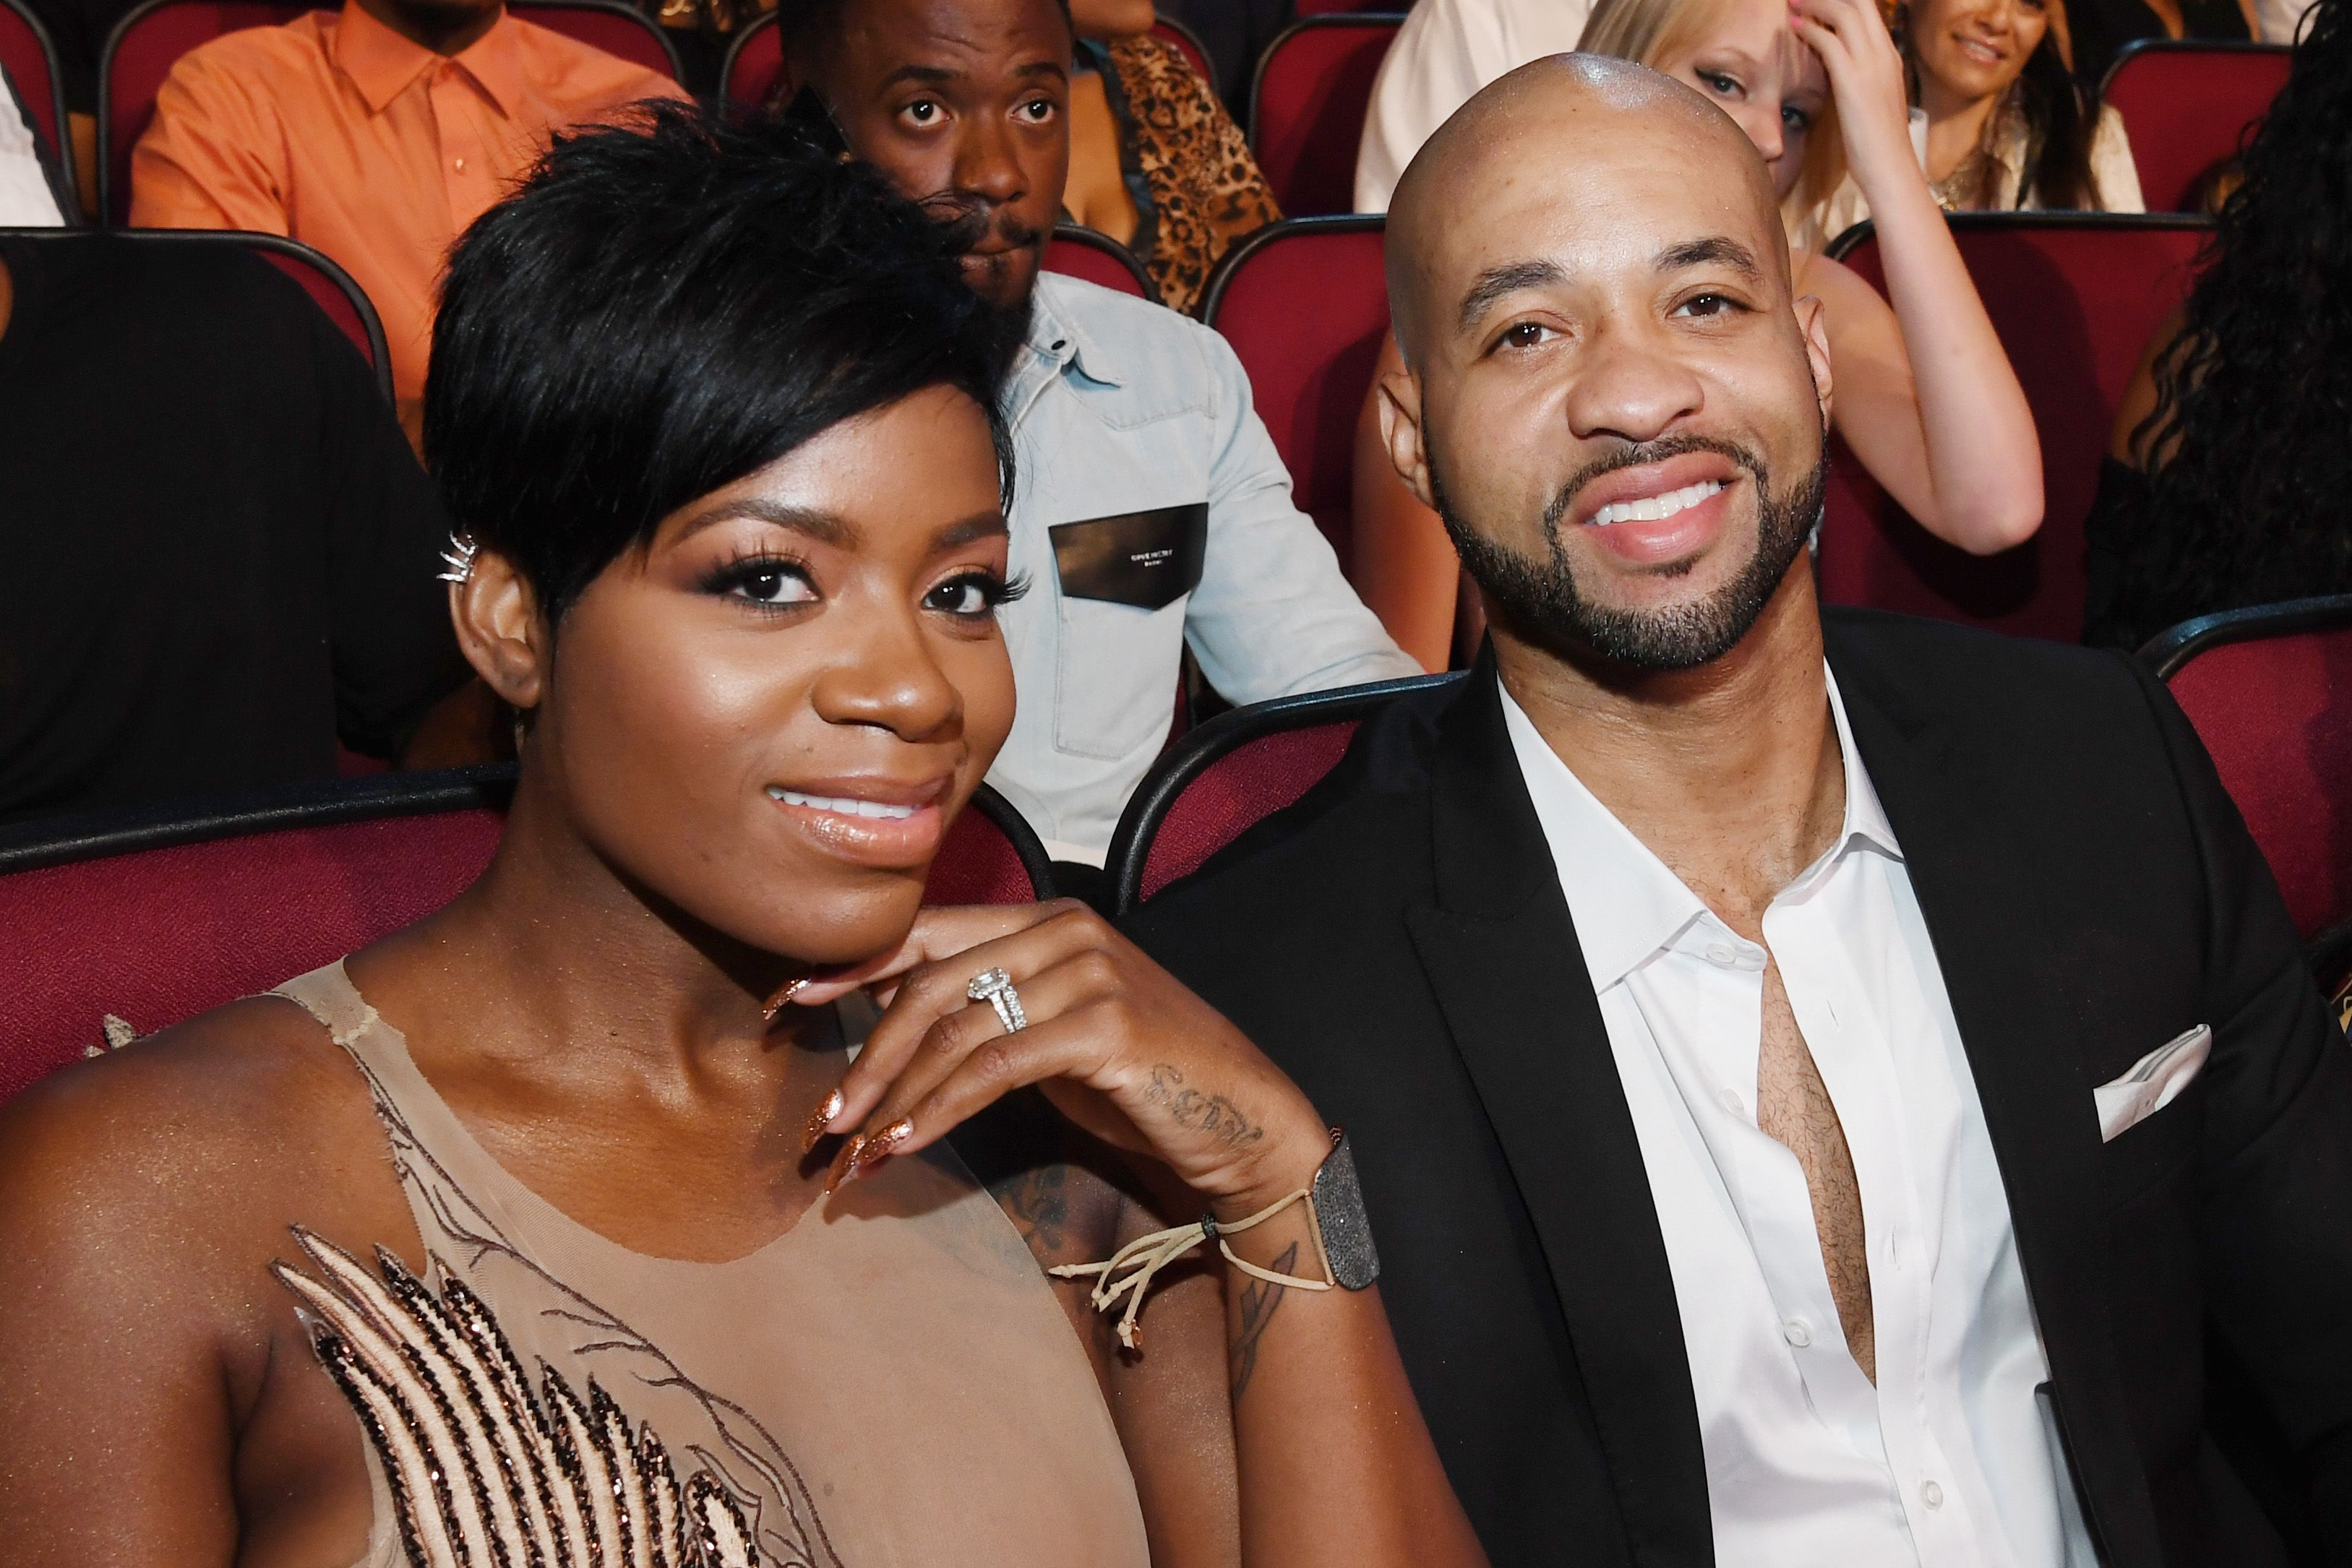 Singer Fantasia Barrino and her husband Kendall Taylor at the 2016 BET Awards at the Microsoft Theater on June 26, 2016 | Photo: Getty Images